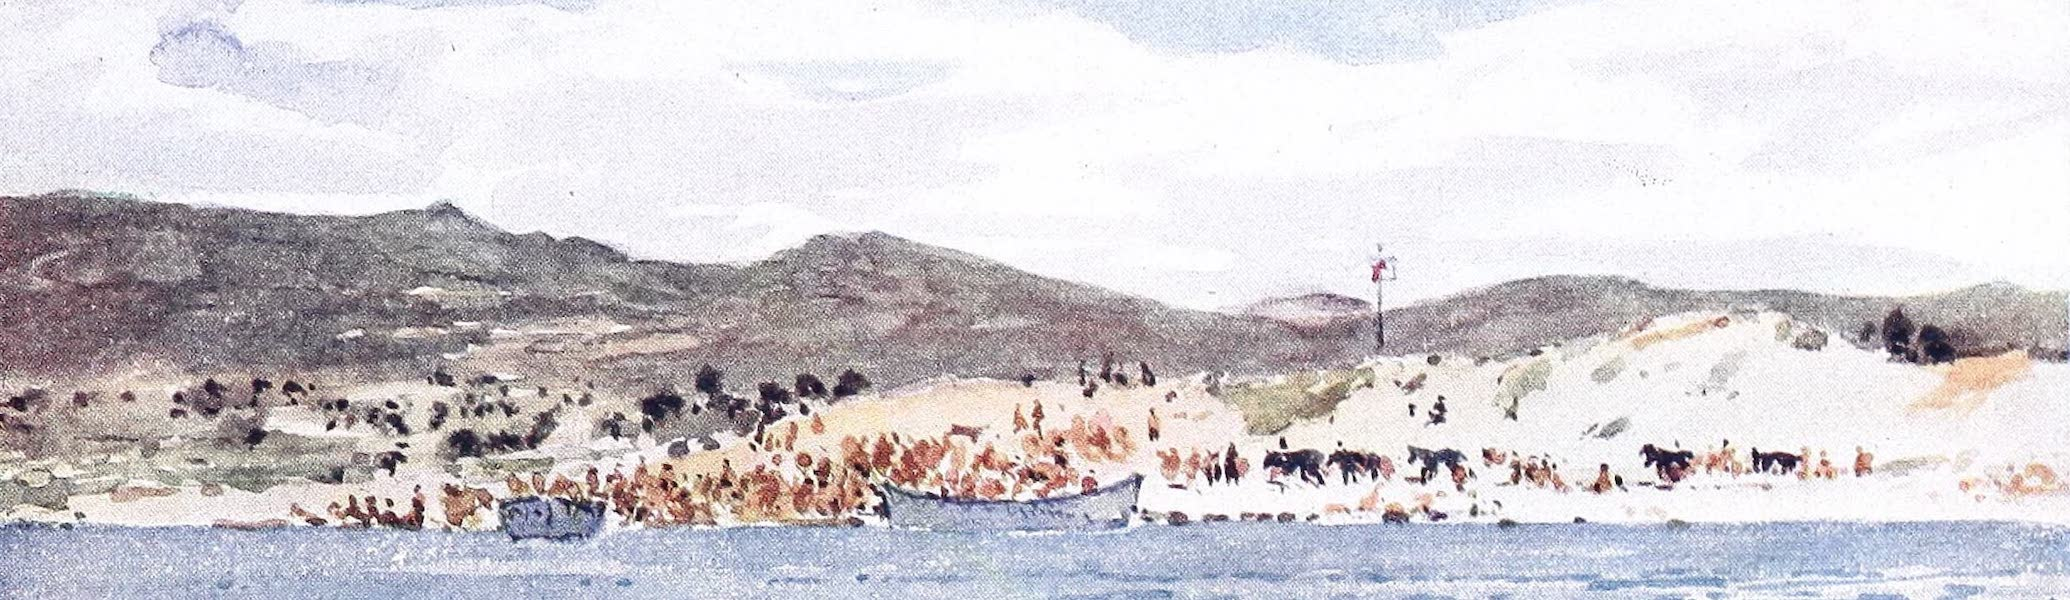 "The Dardanelles : Colour Sketches from Gallipoli - Dressing Station - ""A"" Beach (1915)"